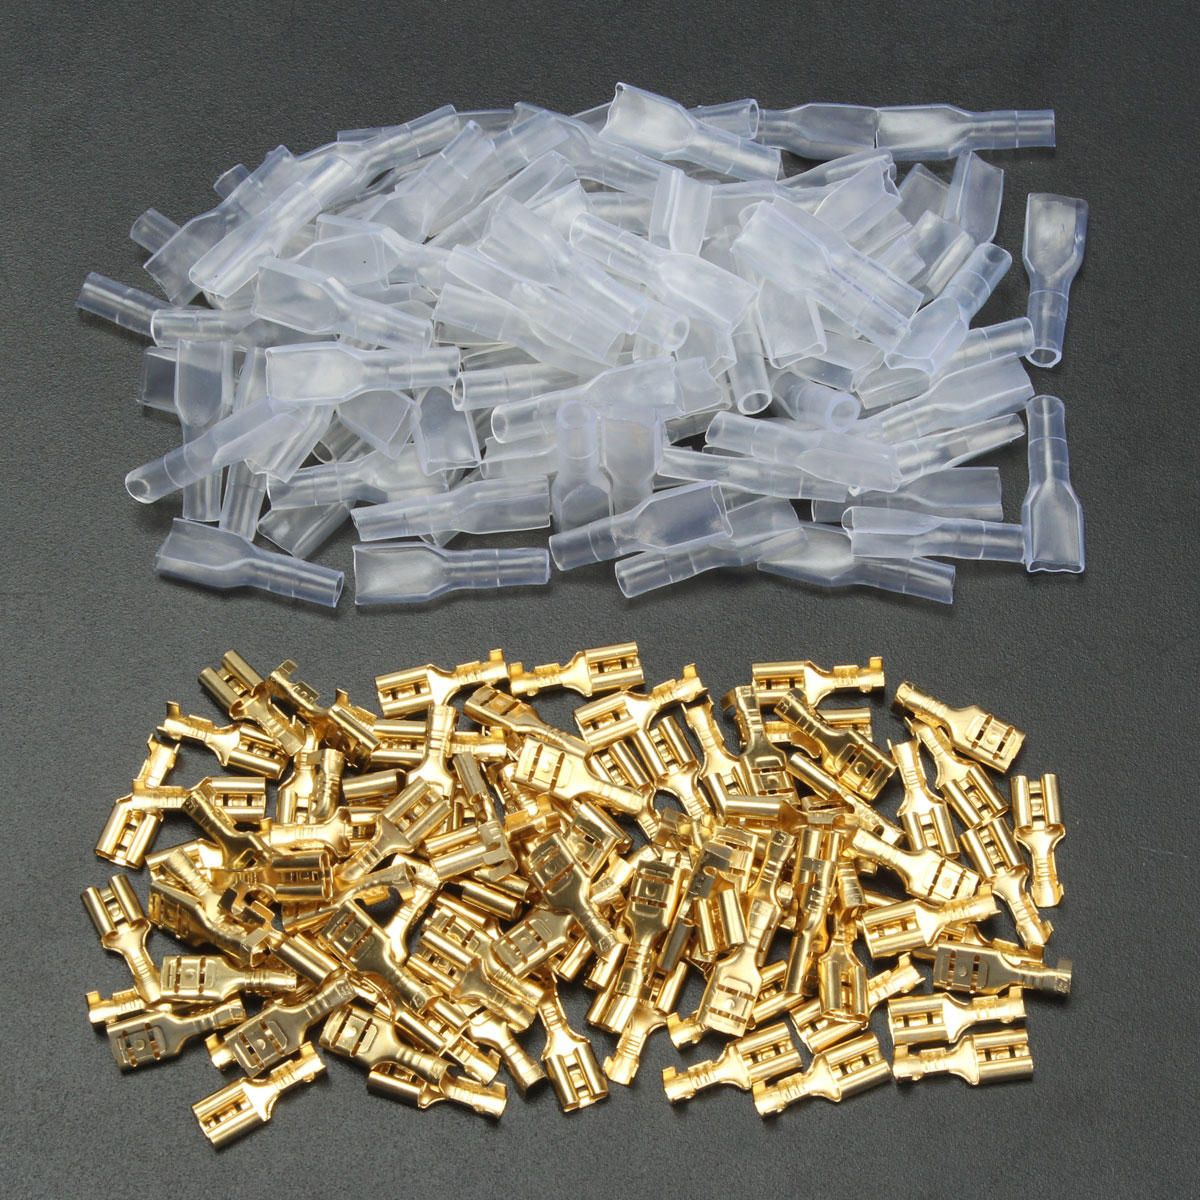 100Pcs Spade Female Heat Shrink Waterproof Wire 22-16AWG Connectors Terminals